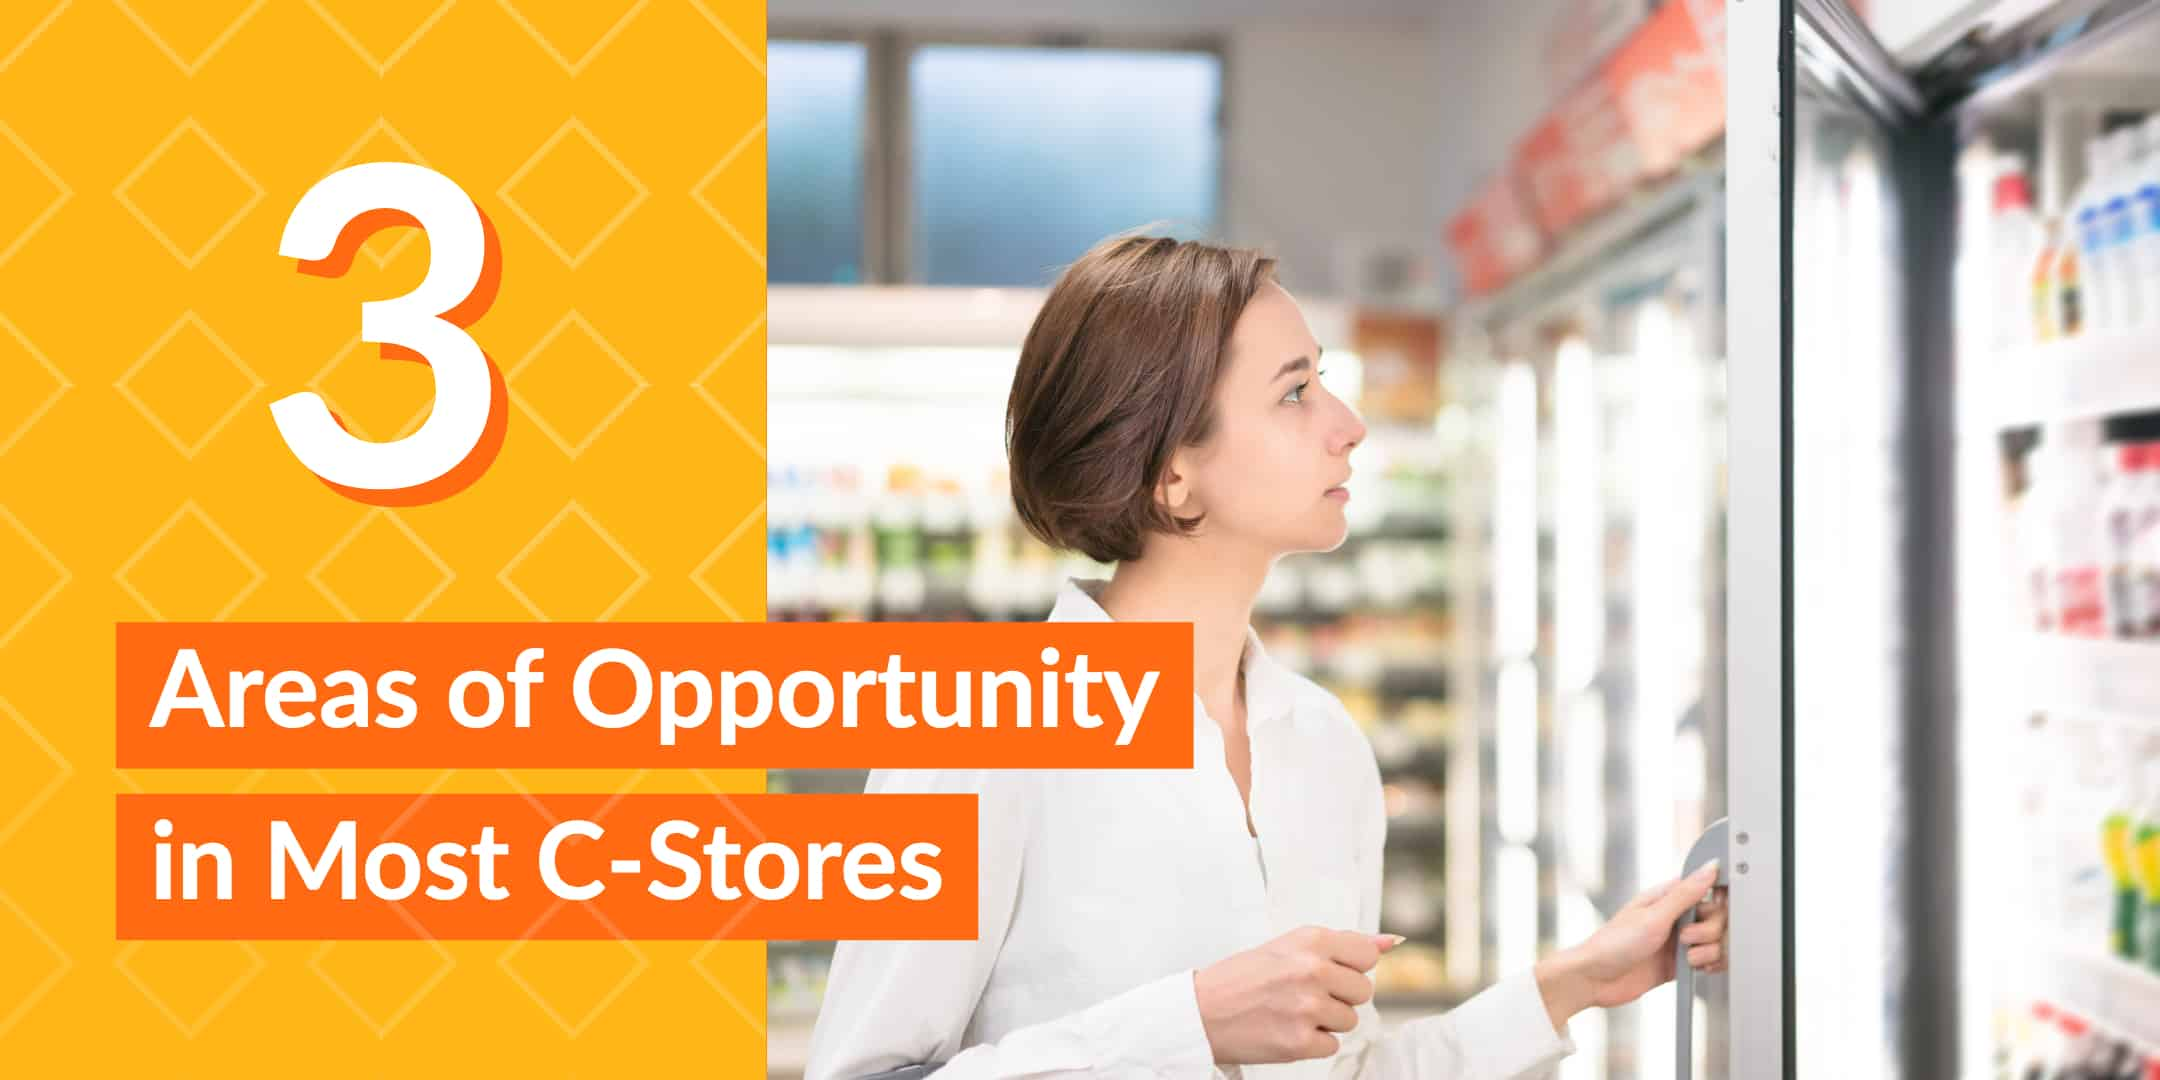 3 Areas of Opportunity in Most C-Stores StrasGlobal